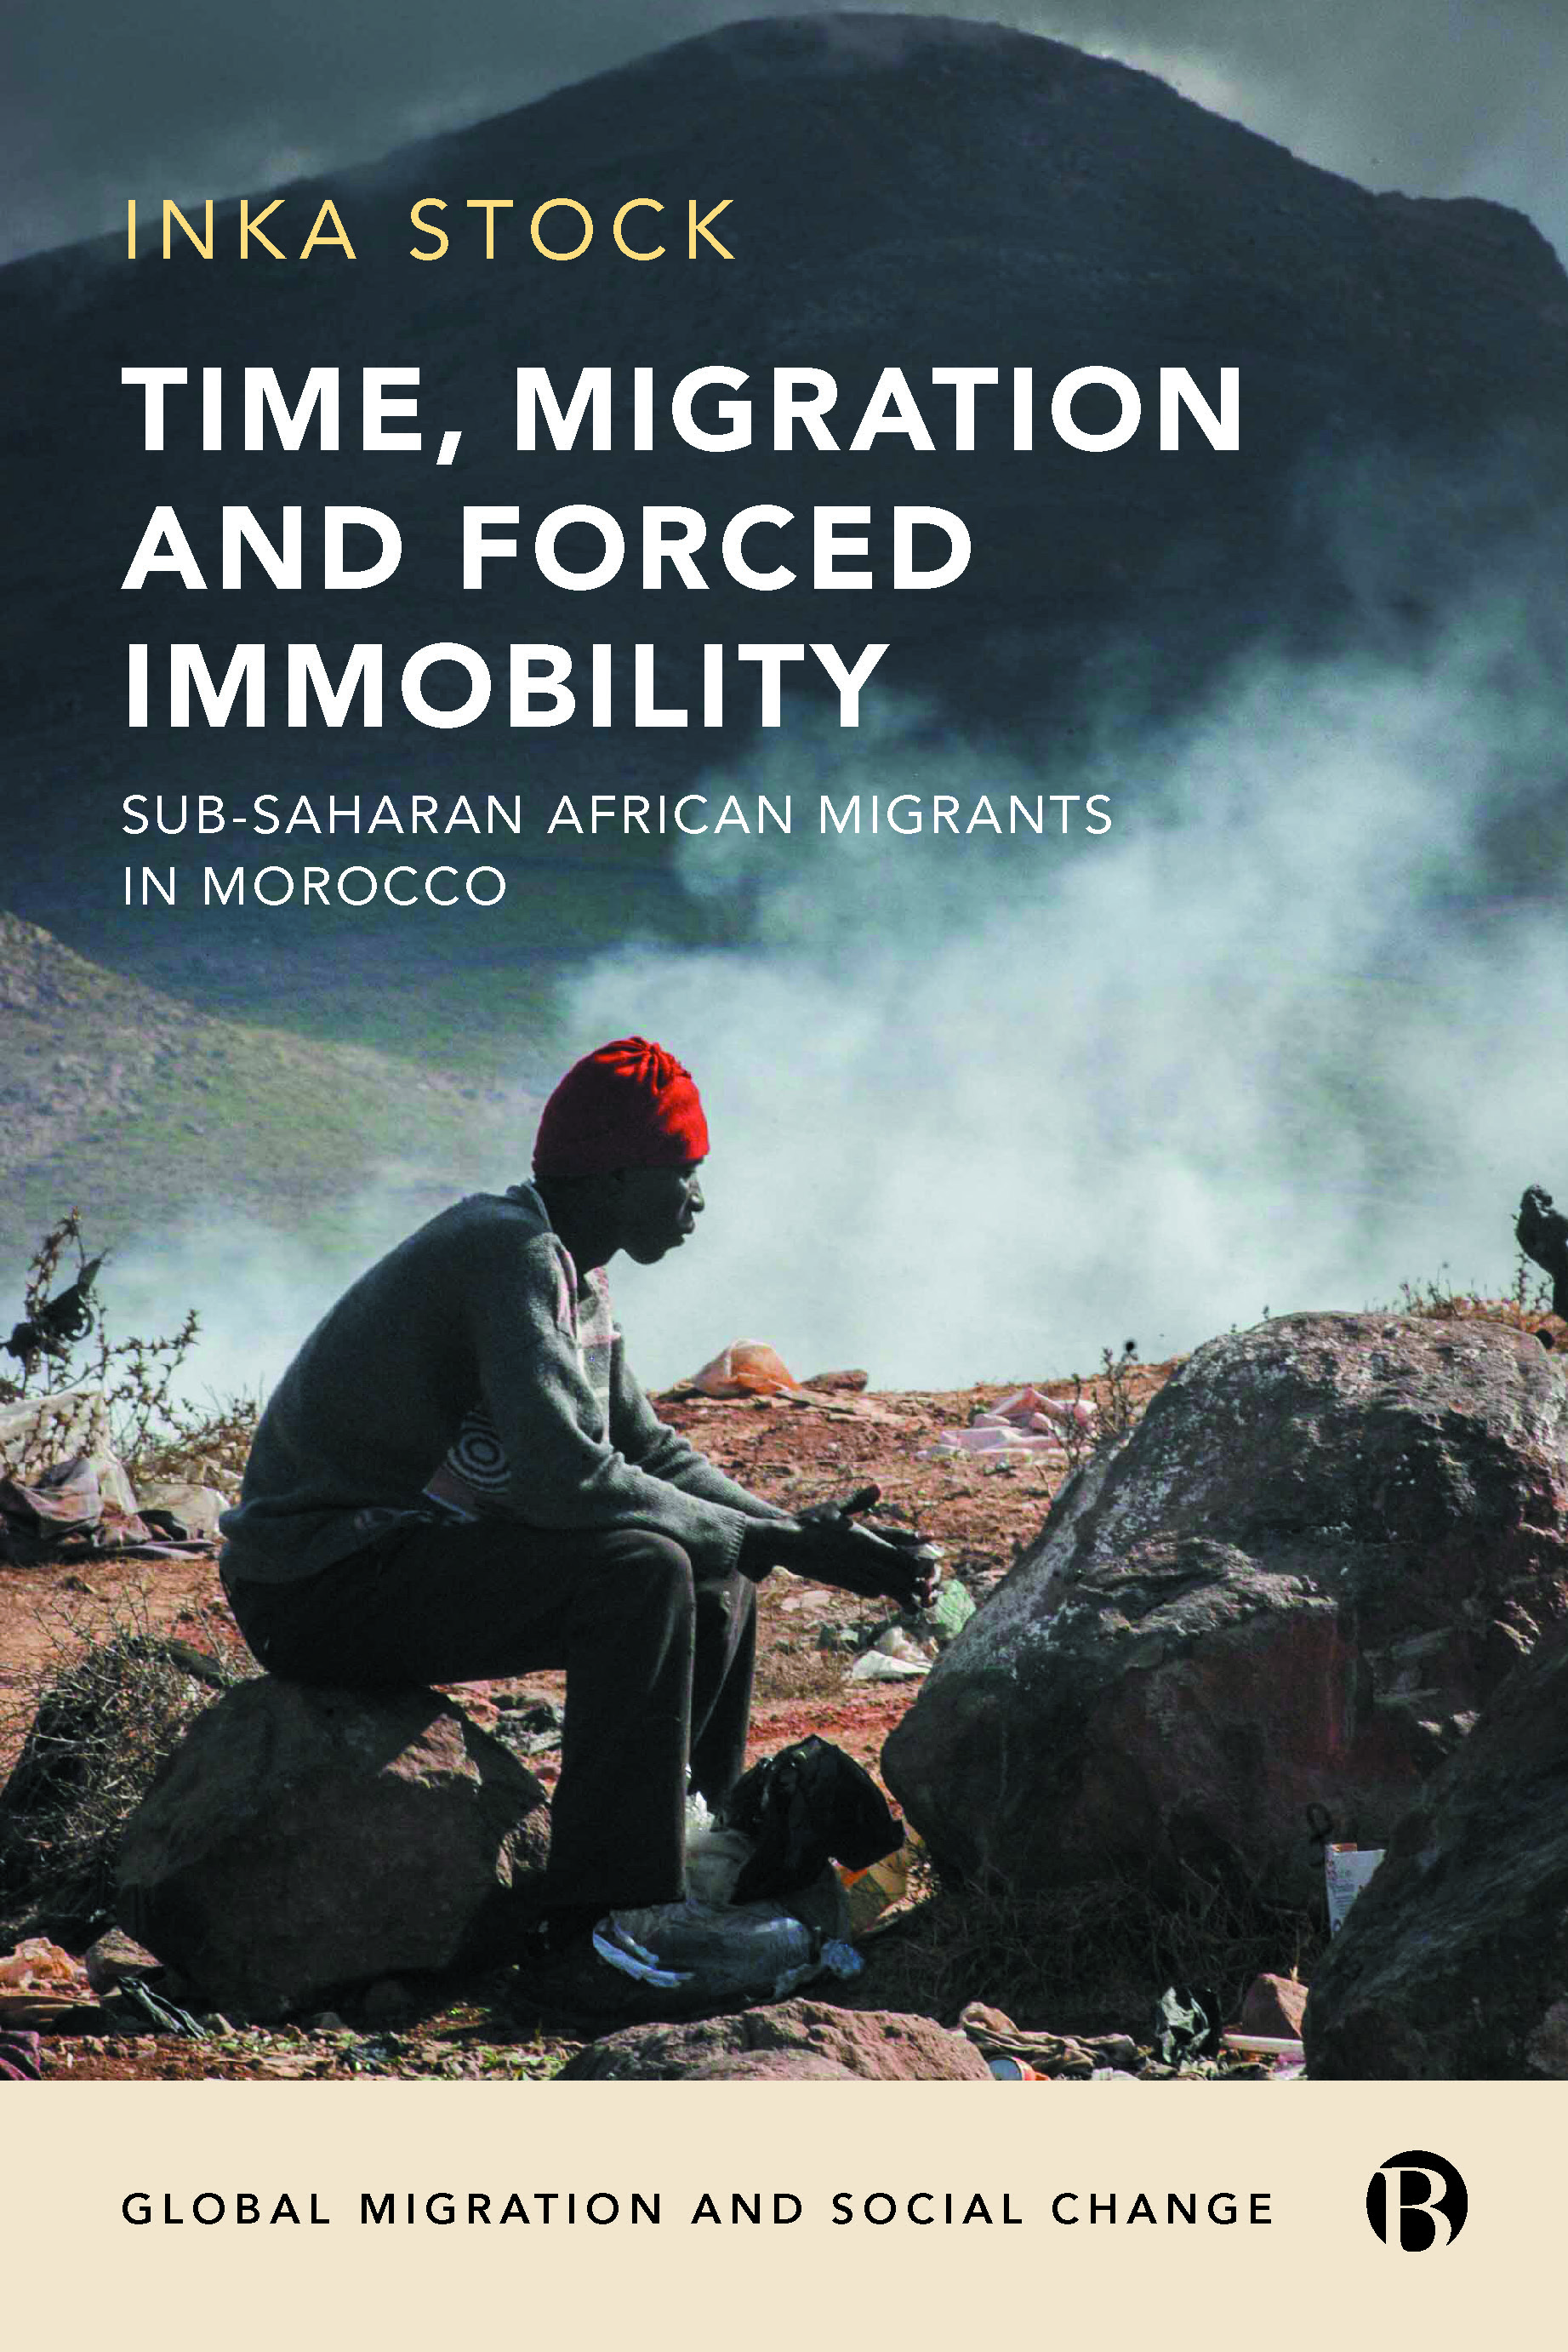 cover image of the book; man sitting on a rock next to a mountain range in Sub-Saharan Africa